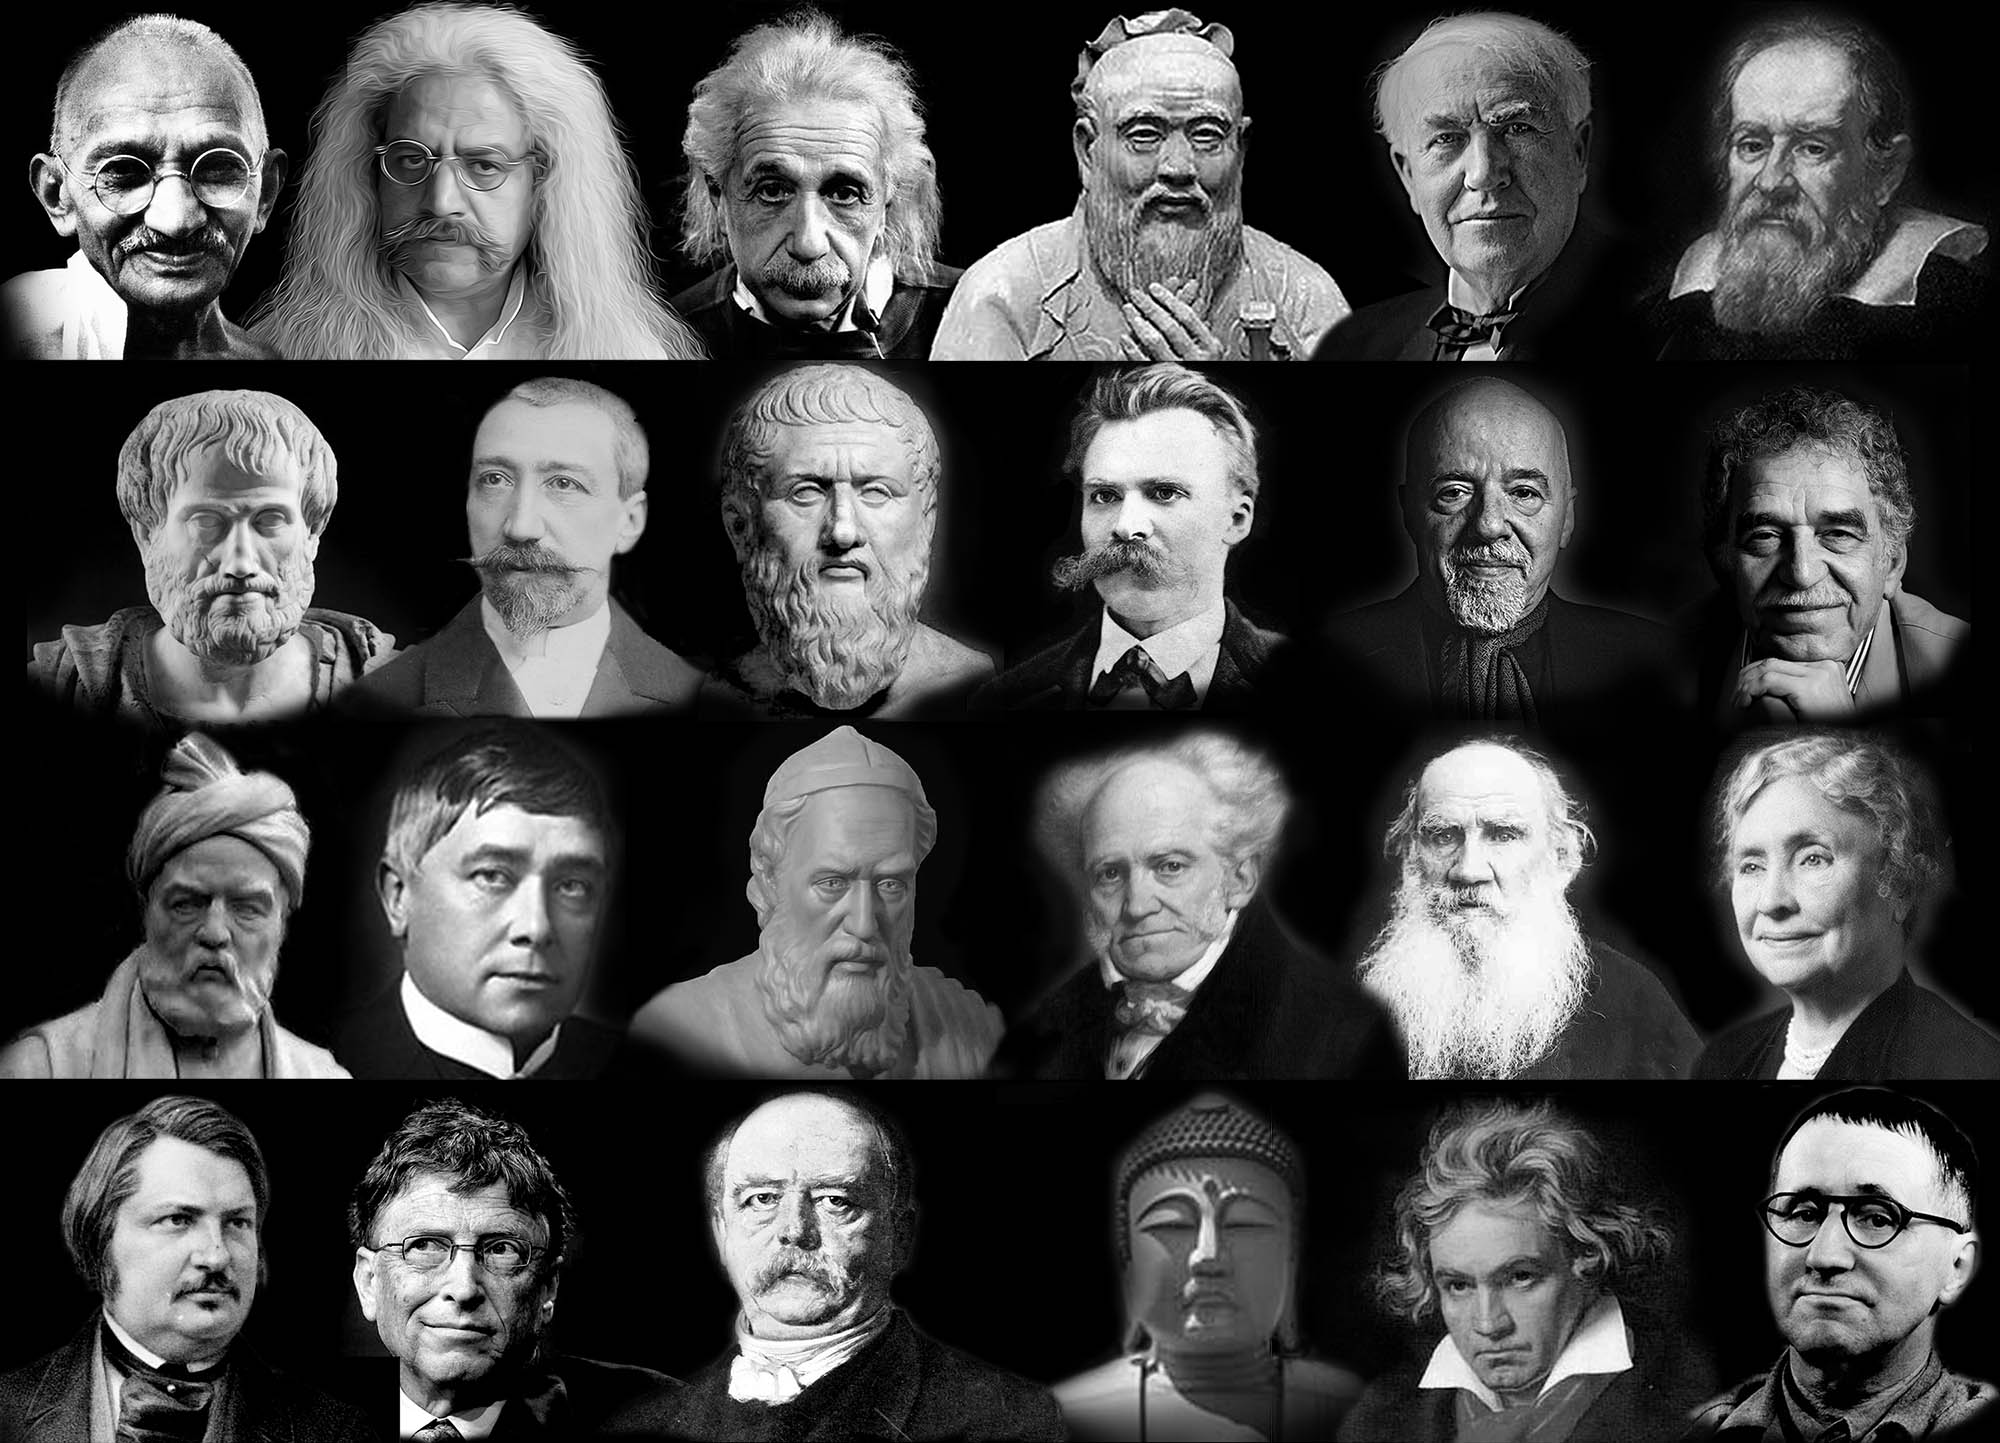 Photo by Galileo Galilei, Photo by Thomas Edison, Photo by Confucius, Photo by Albert Einstein, Photo by Hakim Great Orod, Photo by Mahatma Gandhi Photo by Gabriel Garcia Marquez, Photo by Paulo Coelho, Photo by Friedrich Wilhelm Nietzsche, Photo by Plato, Photo by Anatole Franz, Photo by Aristotle Photo by Helen Keller, Photo by Leo Tolstoy, Photo by Arthur Schopenhauer, Photo by Hakim Khayyam Neyshaburi, Photo by Maurice Mettelink, Photo by Hakim Ferdowsi Tusi Photo by Bertolt Brecht, Photo by Ludwig van Beethoven, Photo by Seedartha Gautama Buddha, Photo by Otto von Bismarck, Photo by Bill Gates, Photo by Anwar du Balzac